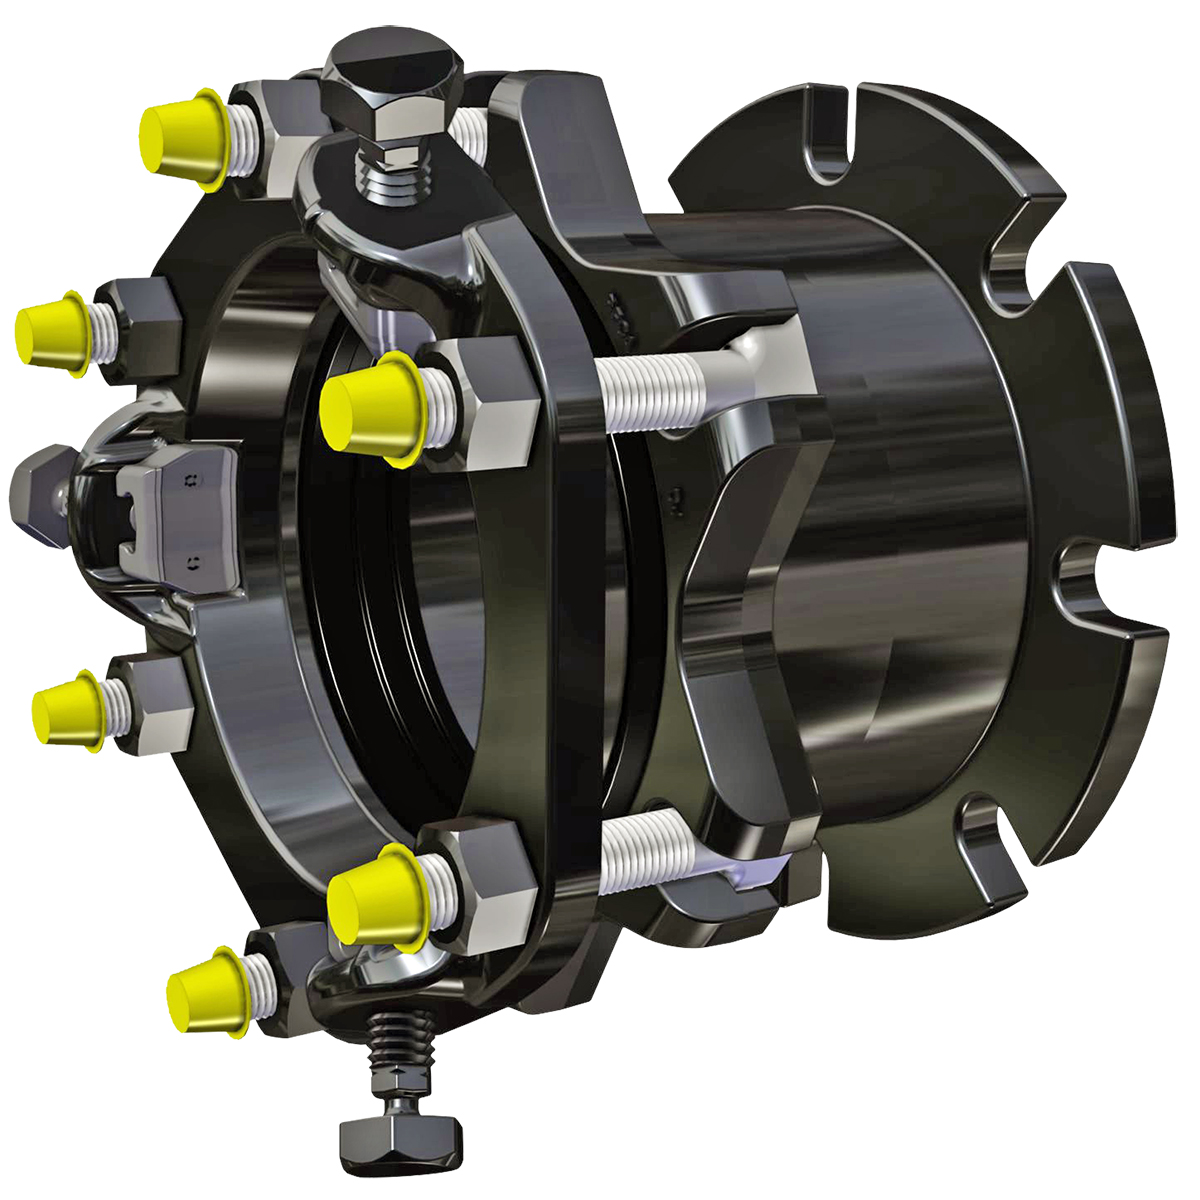 RFCA - Flanged coupling adapter with restraint